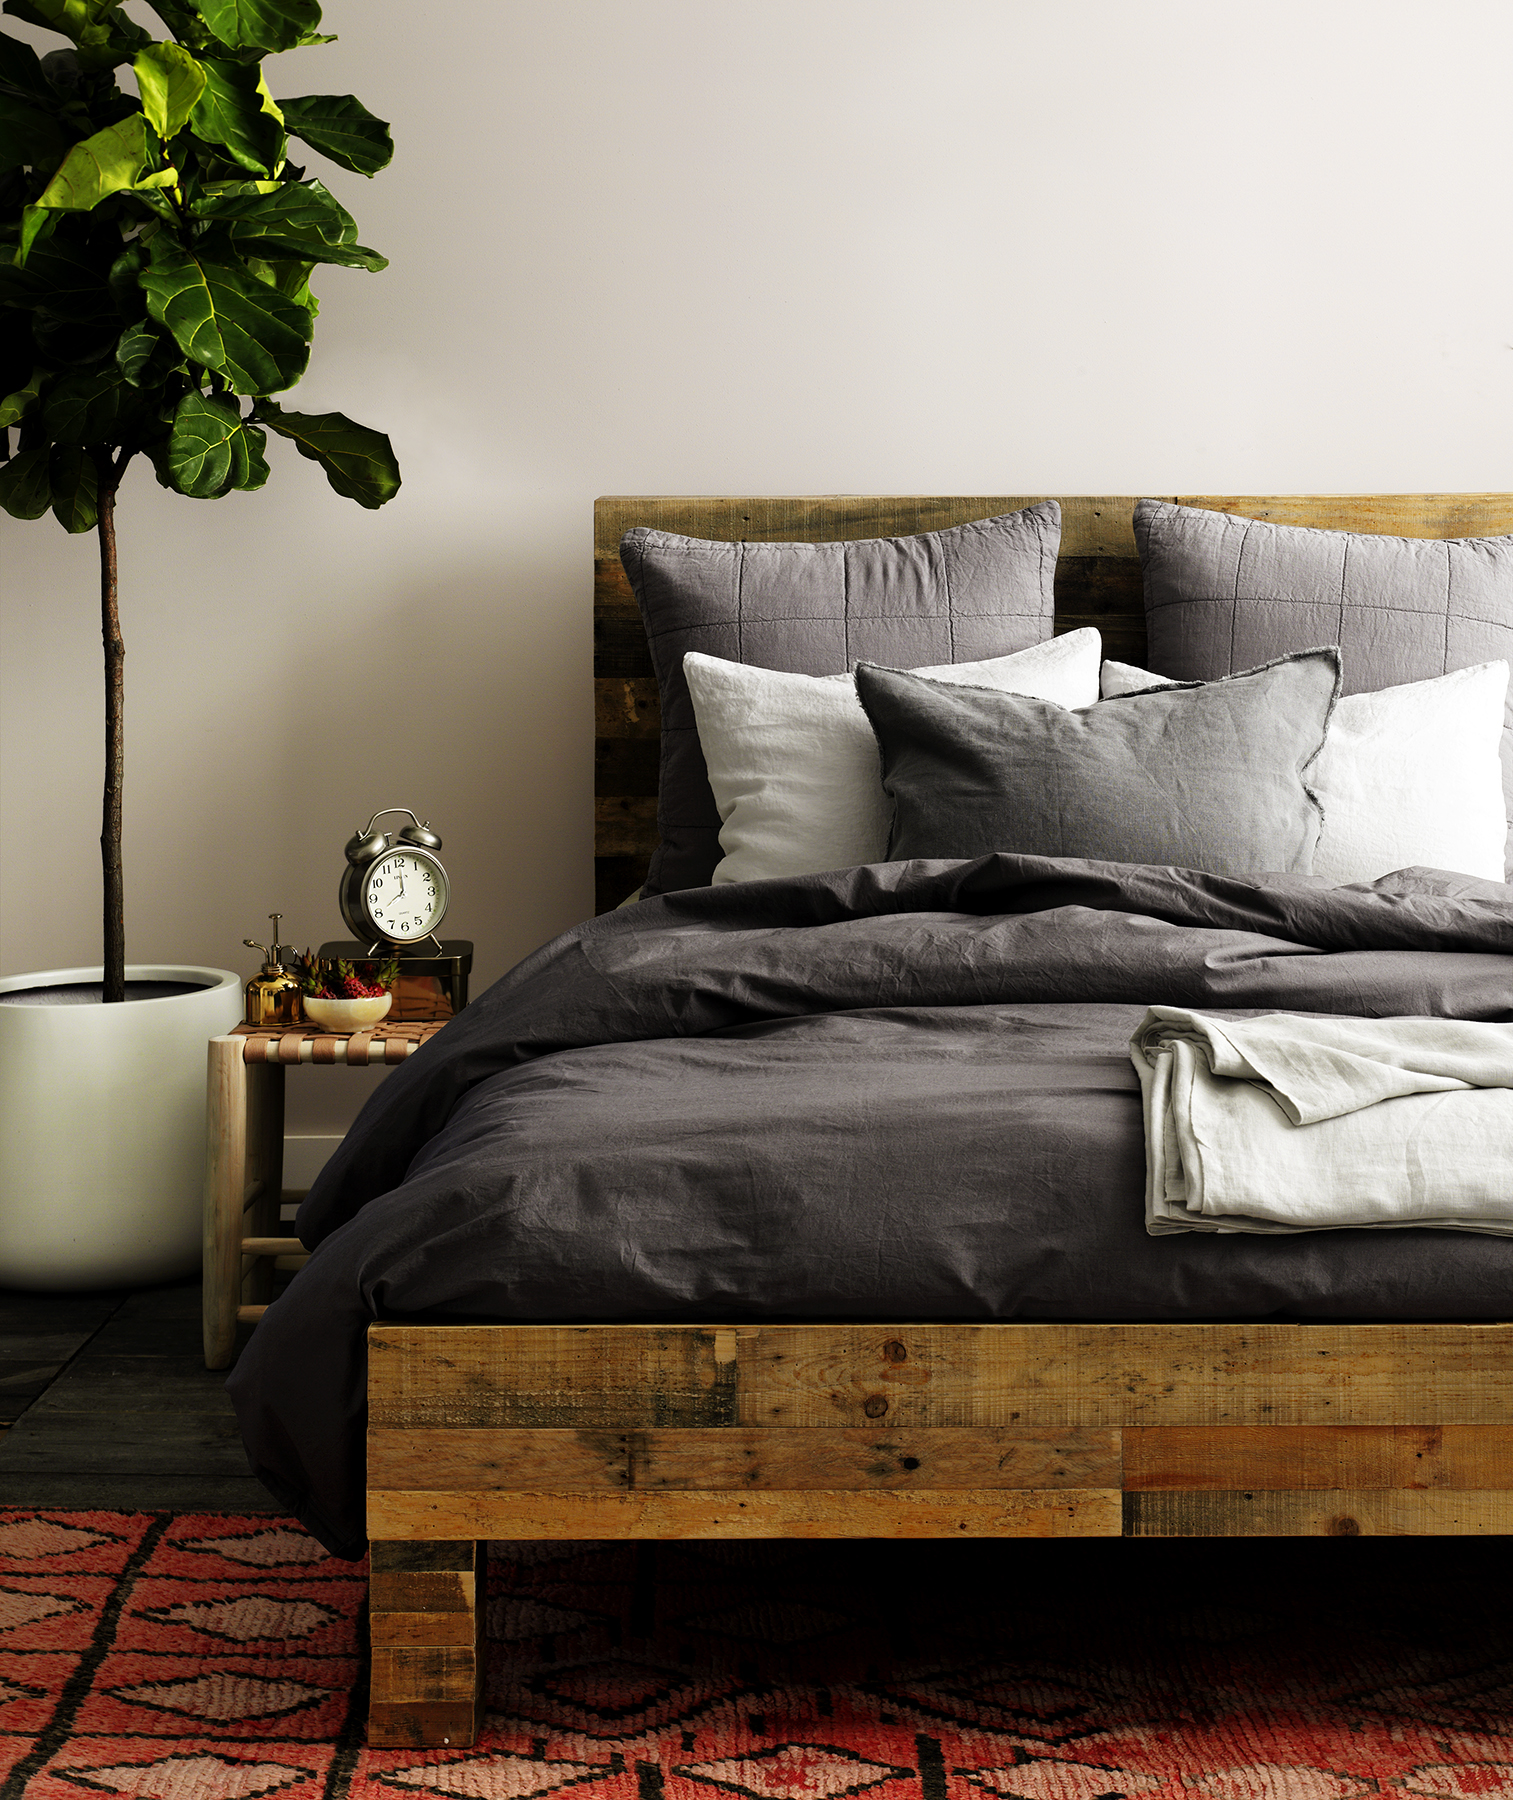 Wooden bed with linens in shades of gray